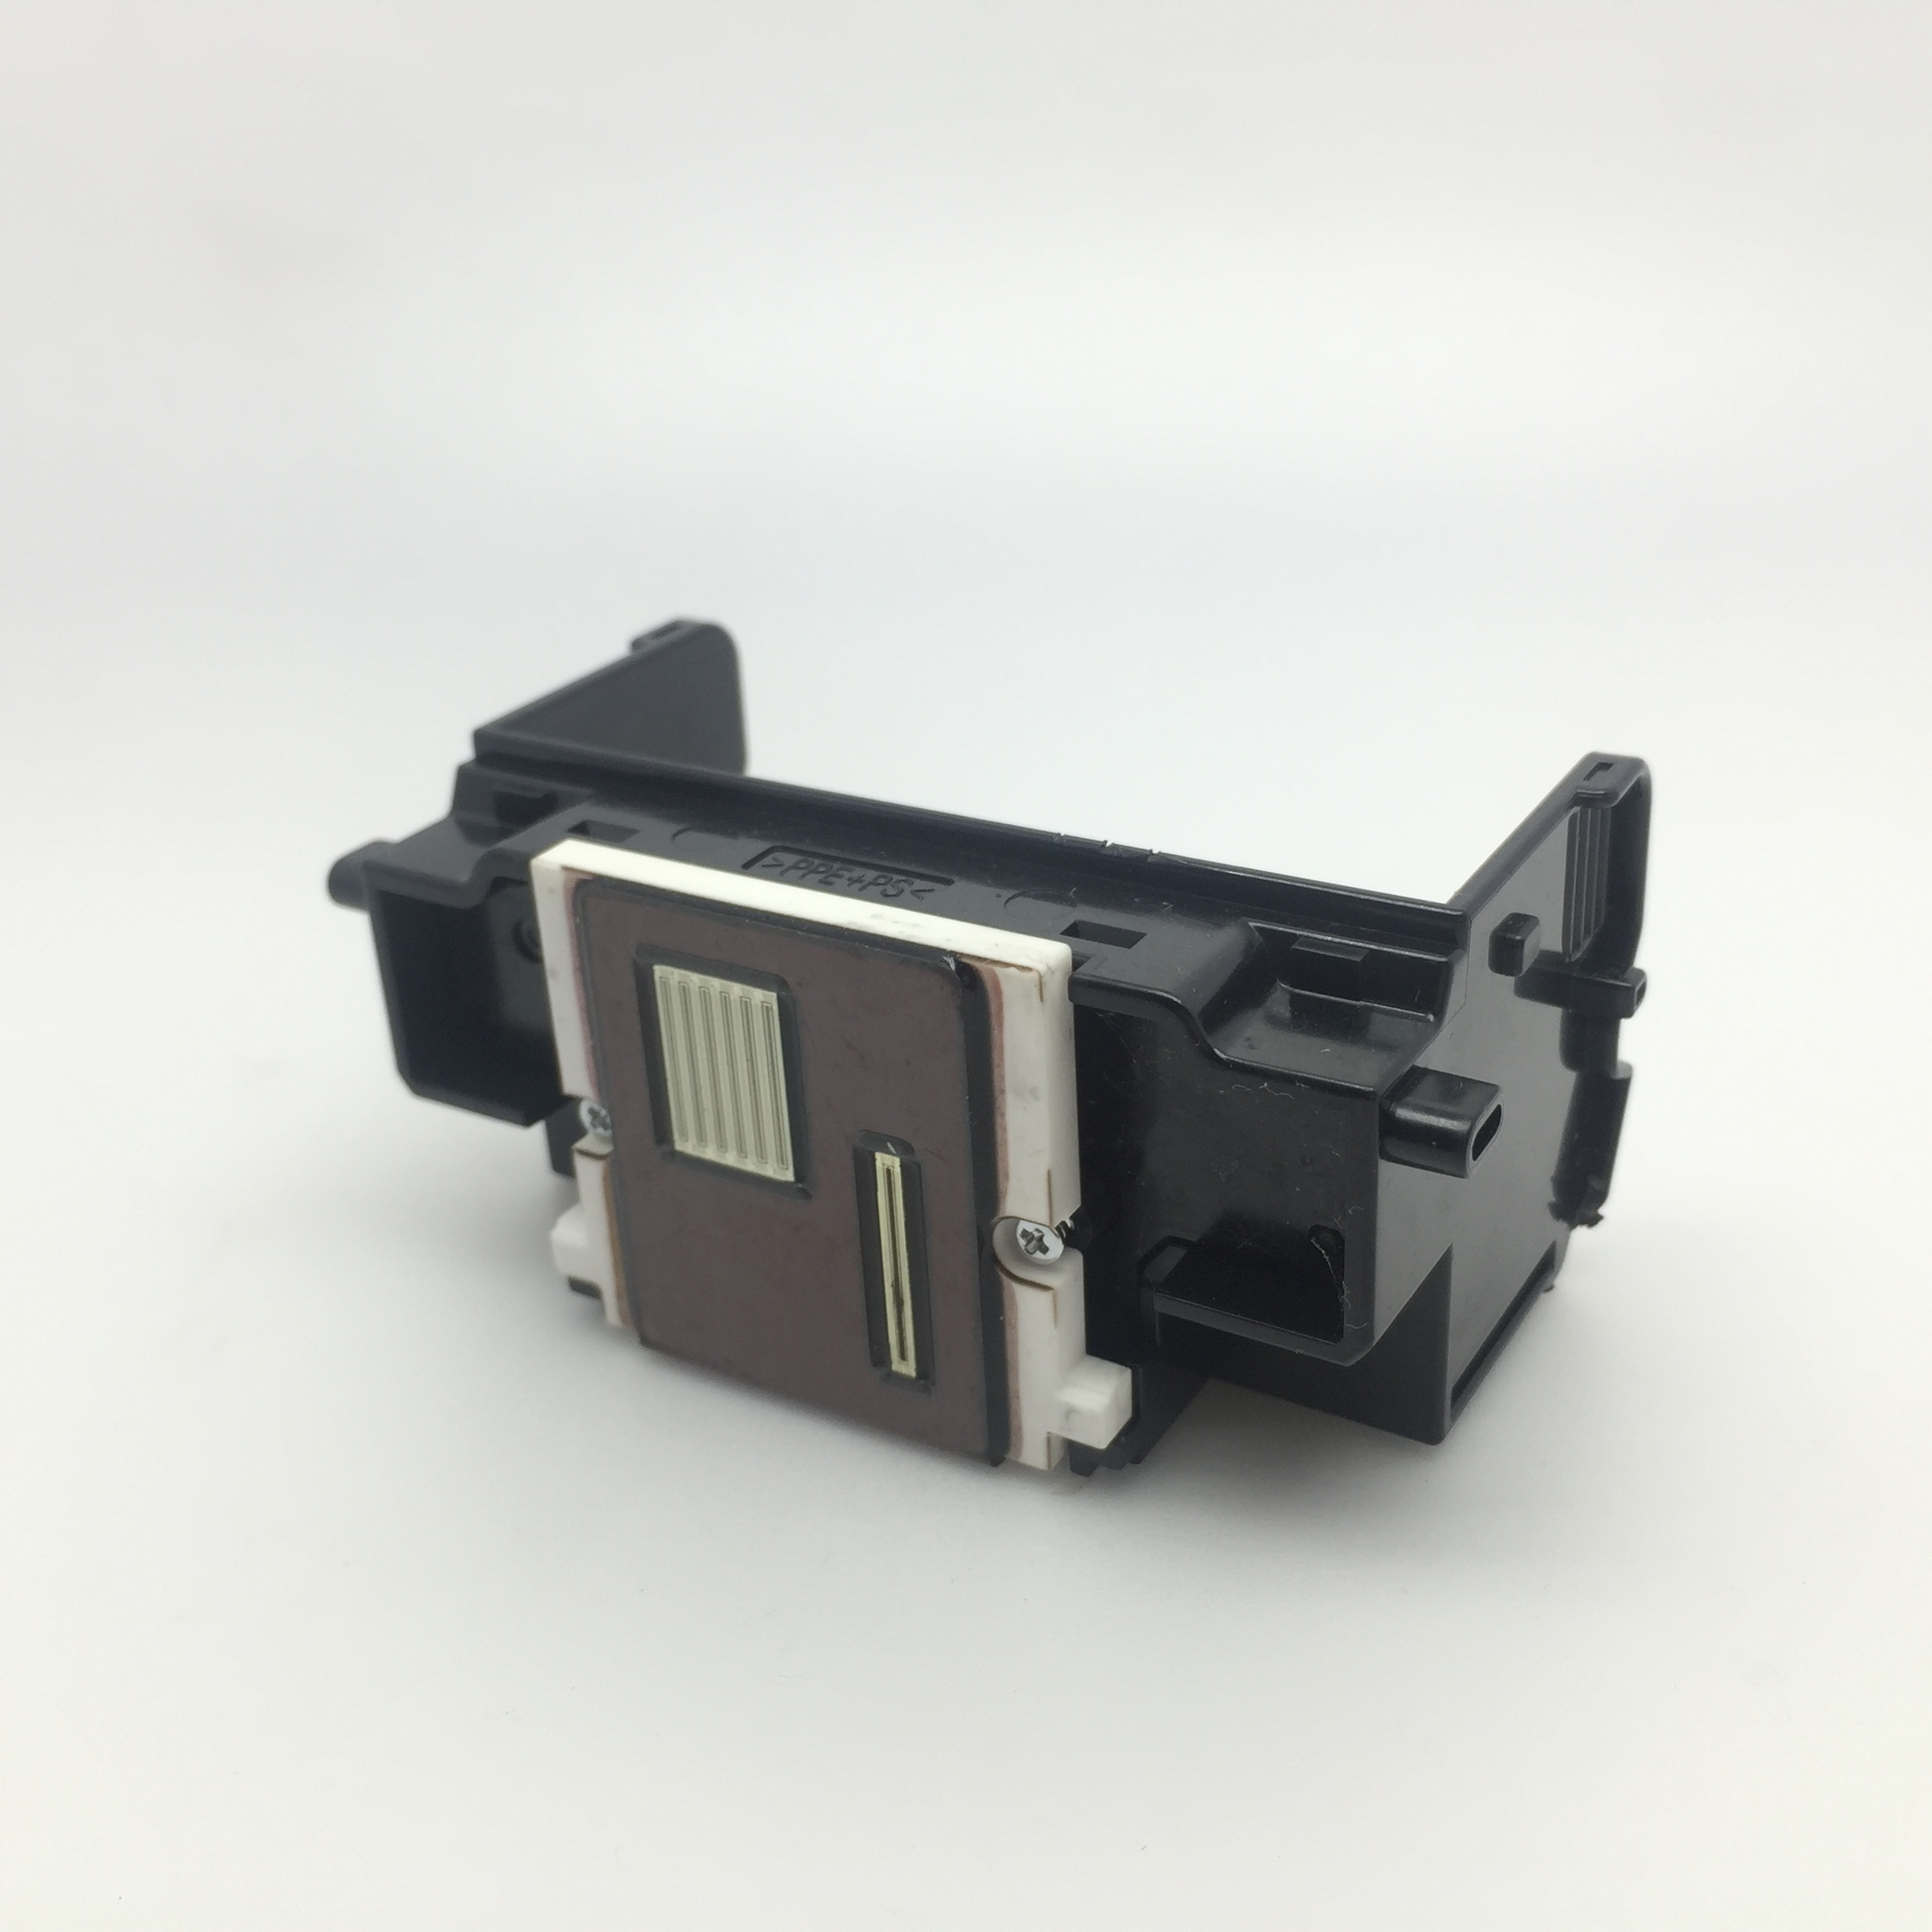 only guarantee the print quality of black Printhead QY6-0072 Print head For Canon IP4600 IP4700 MP630 MP640 SHIPPING FREE print head qy6 0083 printhead for canon mg6310 mg6320 mg6350 mg6370 shipping free